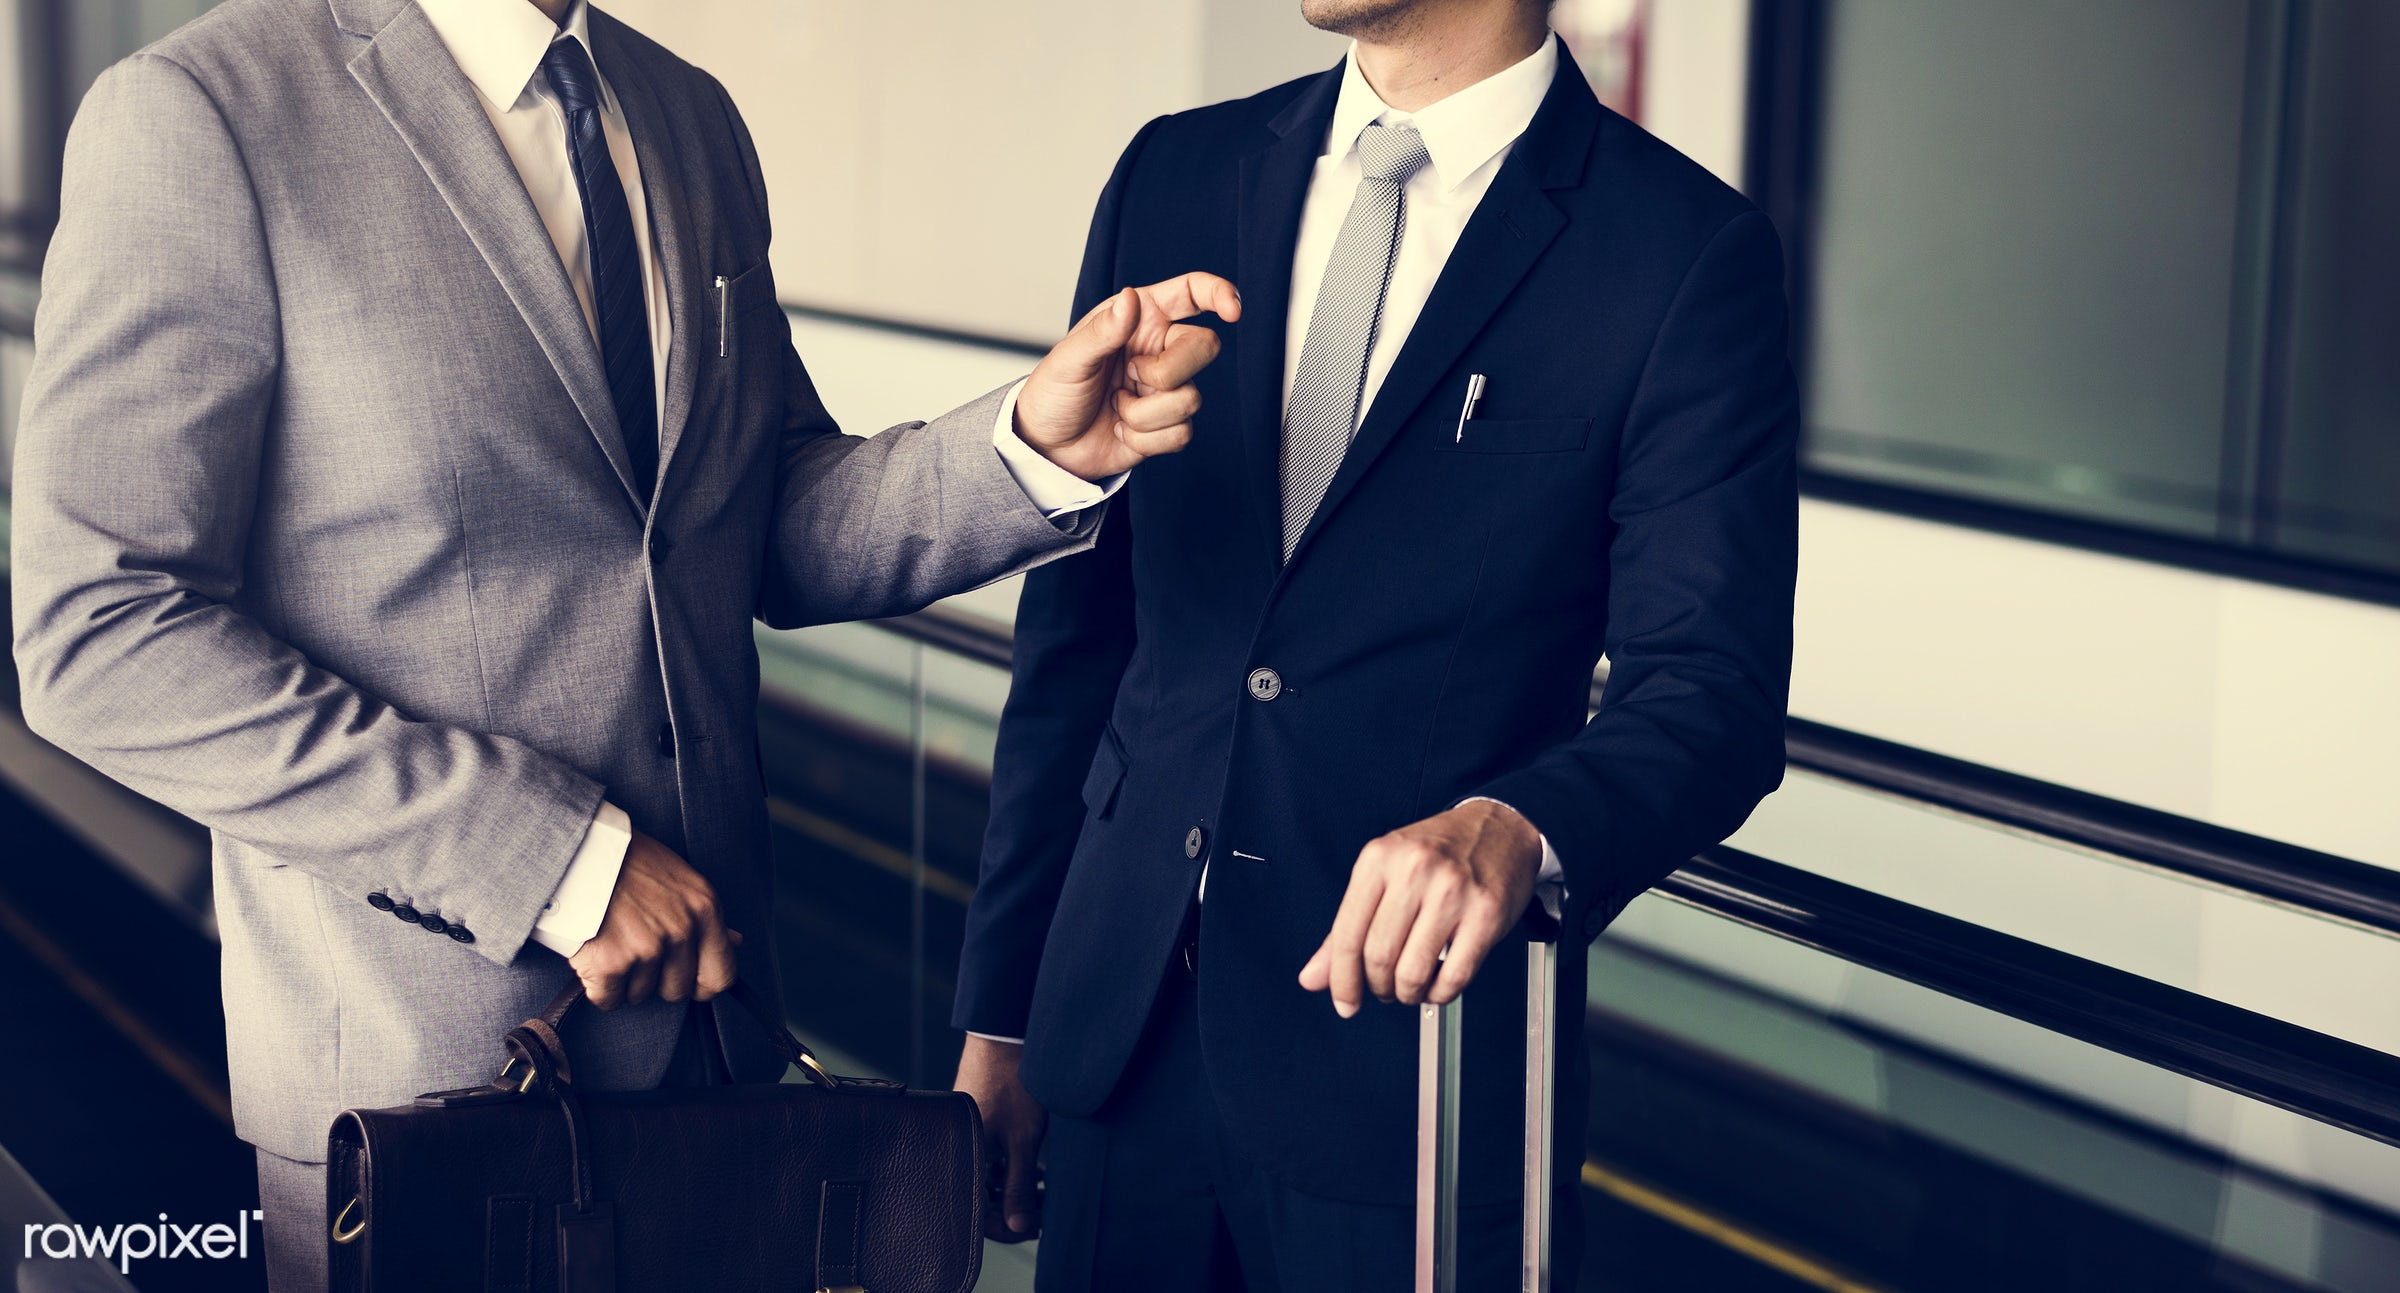 business trip, baggage, person, manager, suit and tie, diverse, white collar worker, luggage, travel, people, together,...